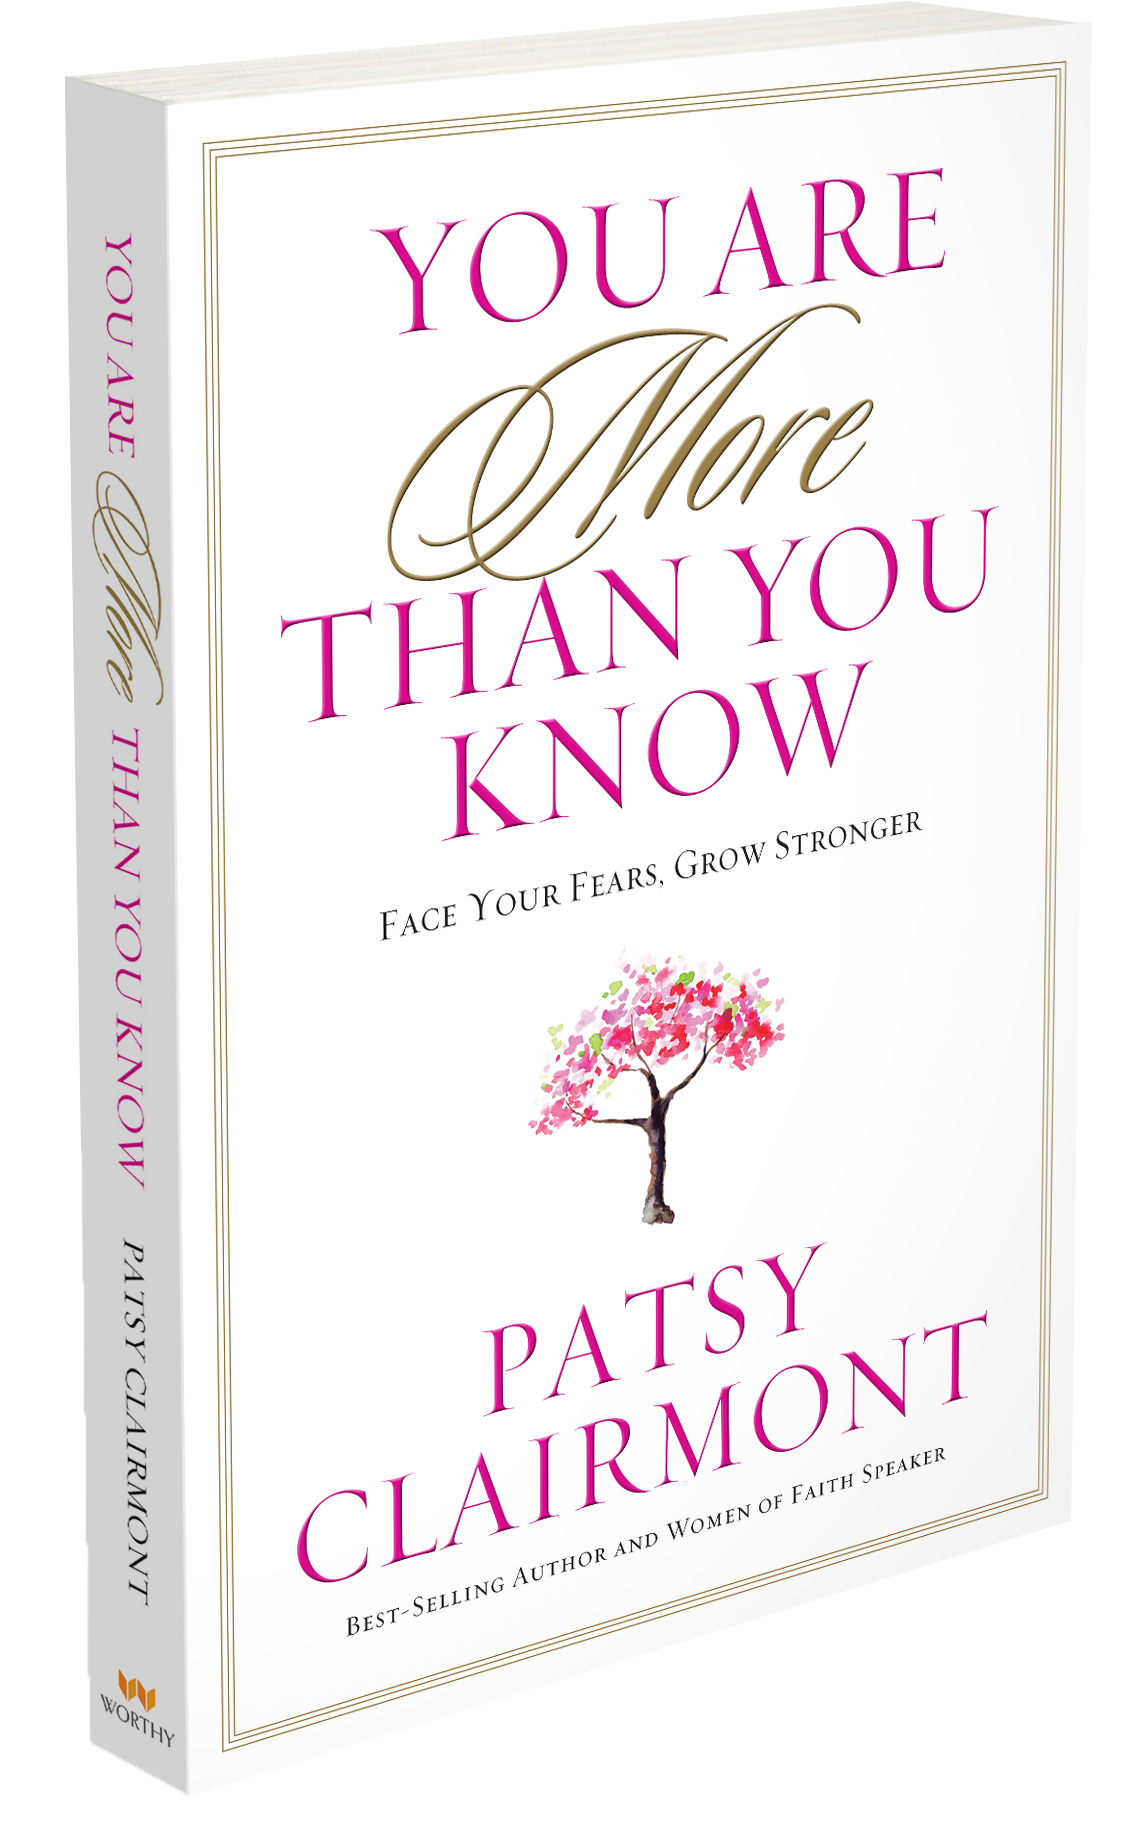 You are More than You Know - Patsy Clairmont